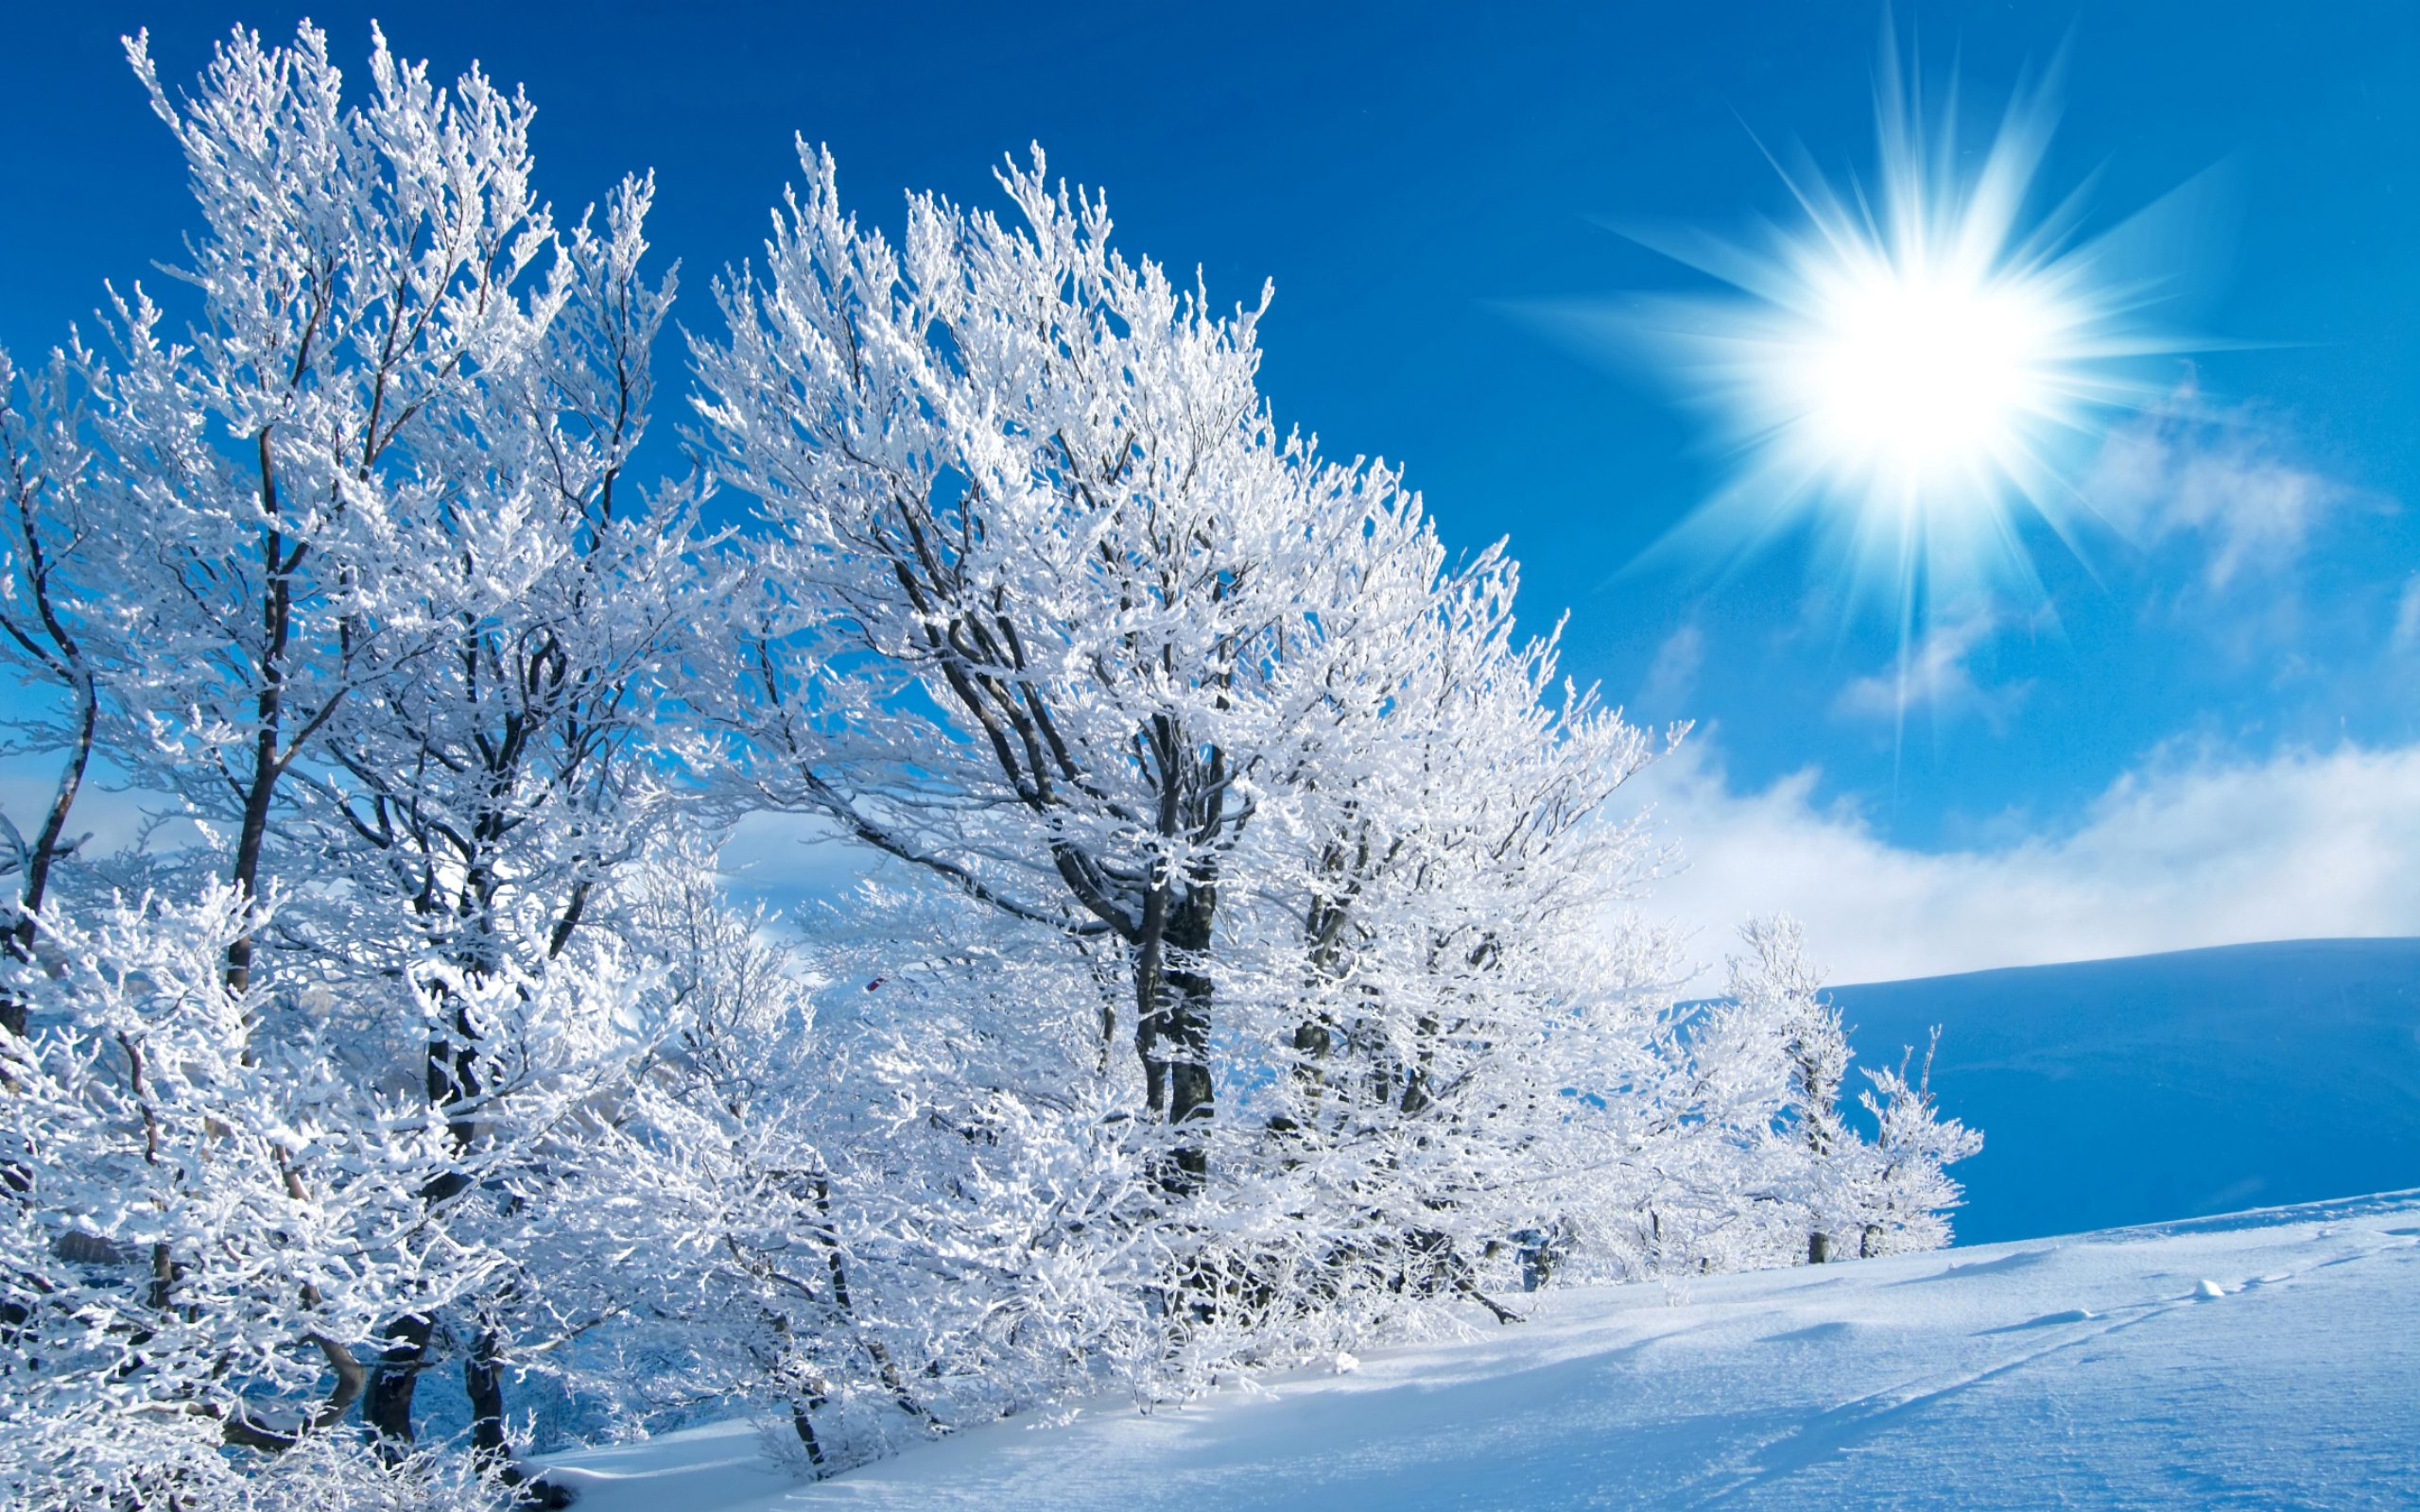 13 2015 By Stephen Comments Off on Winter Scenes HD Wallpaper 2560x1600